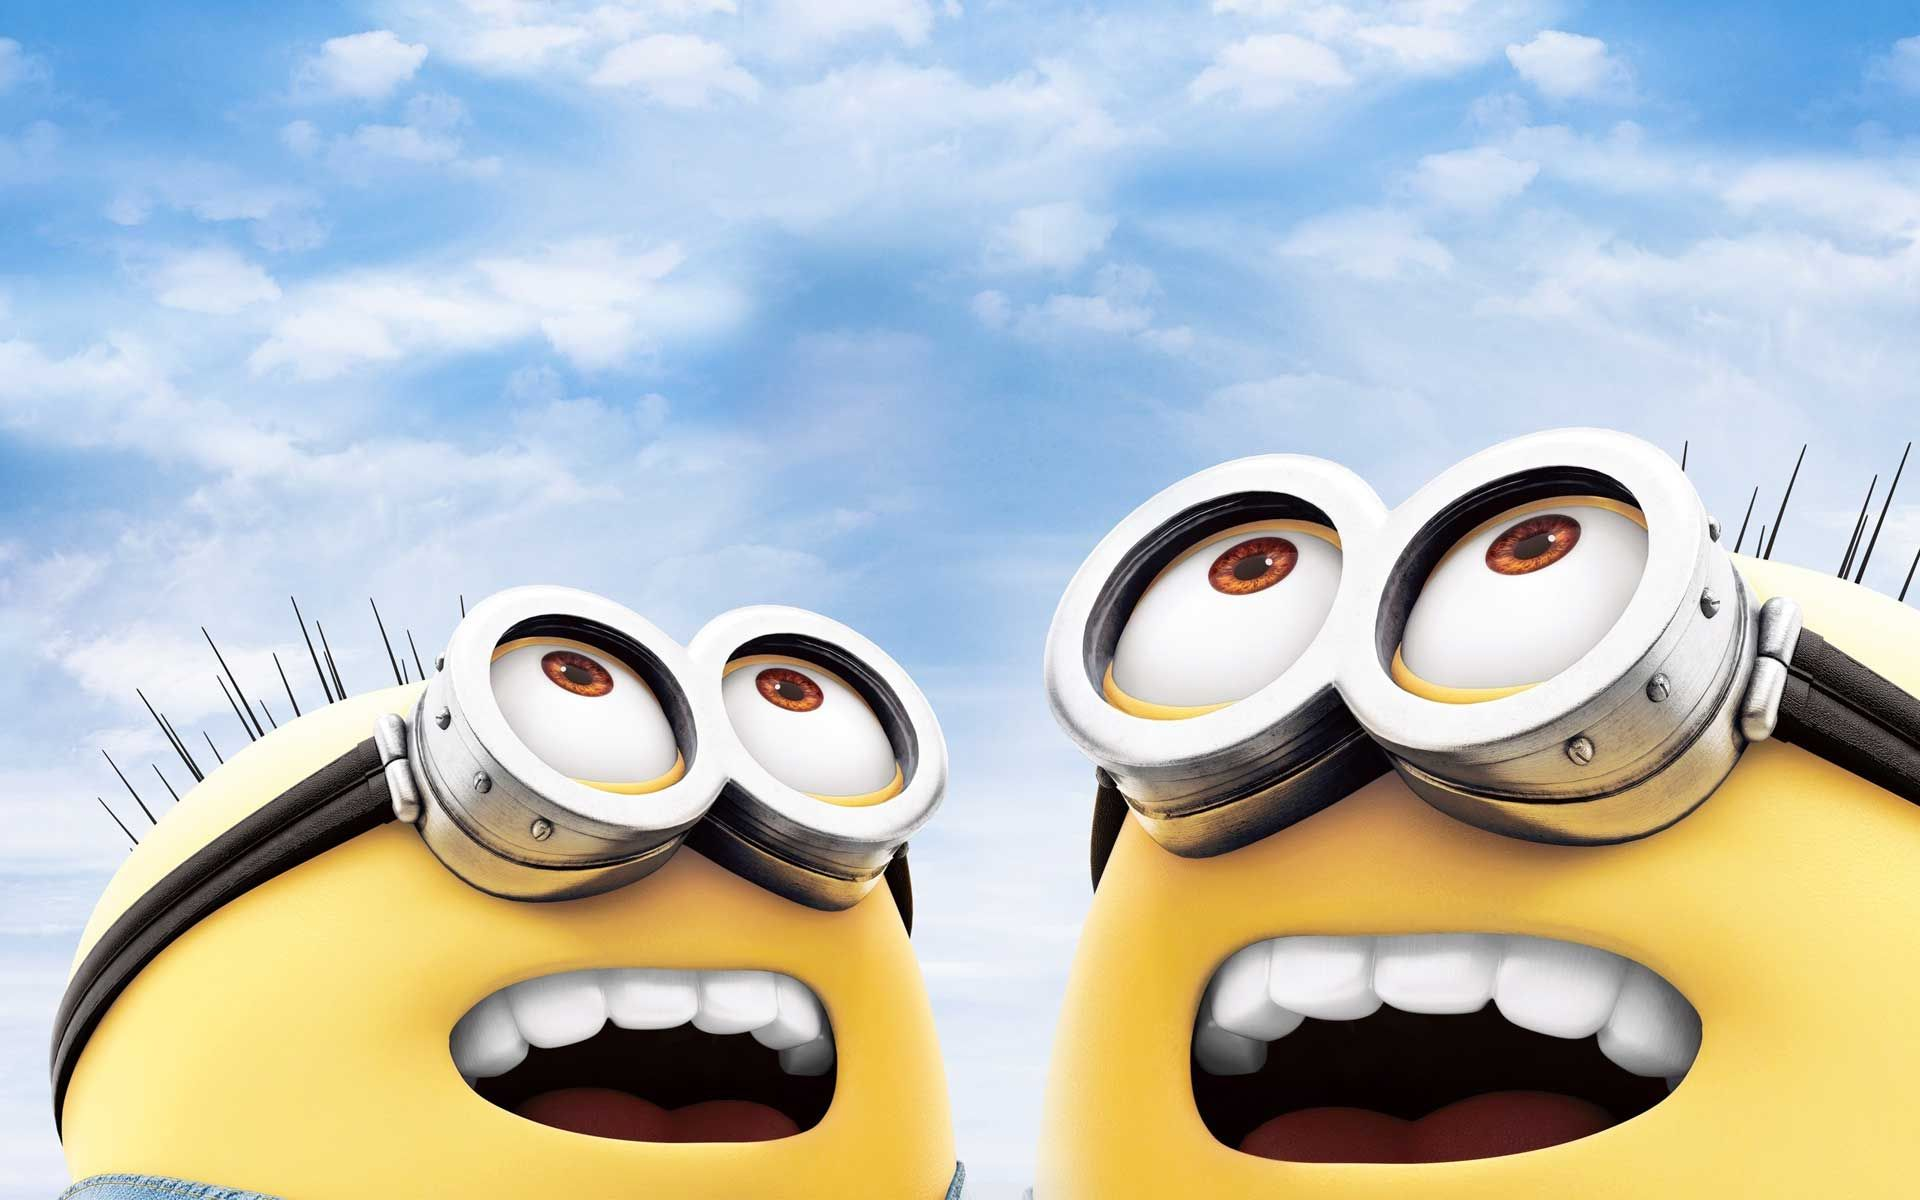 25 Cute Minions Wallpapers Collection Minions Wallpaper Cute Minions Wallpaper Wallpaper Pc